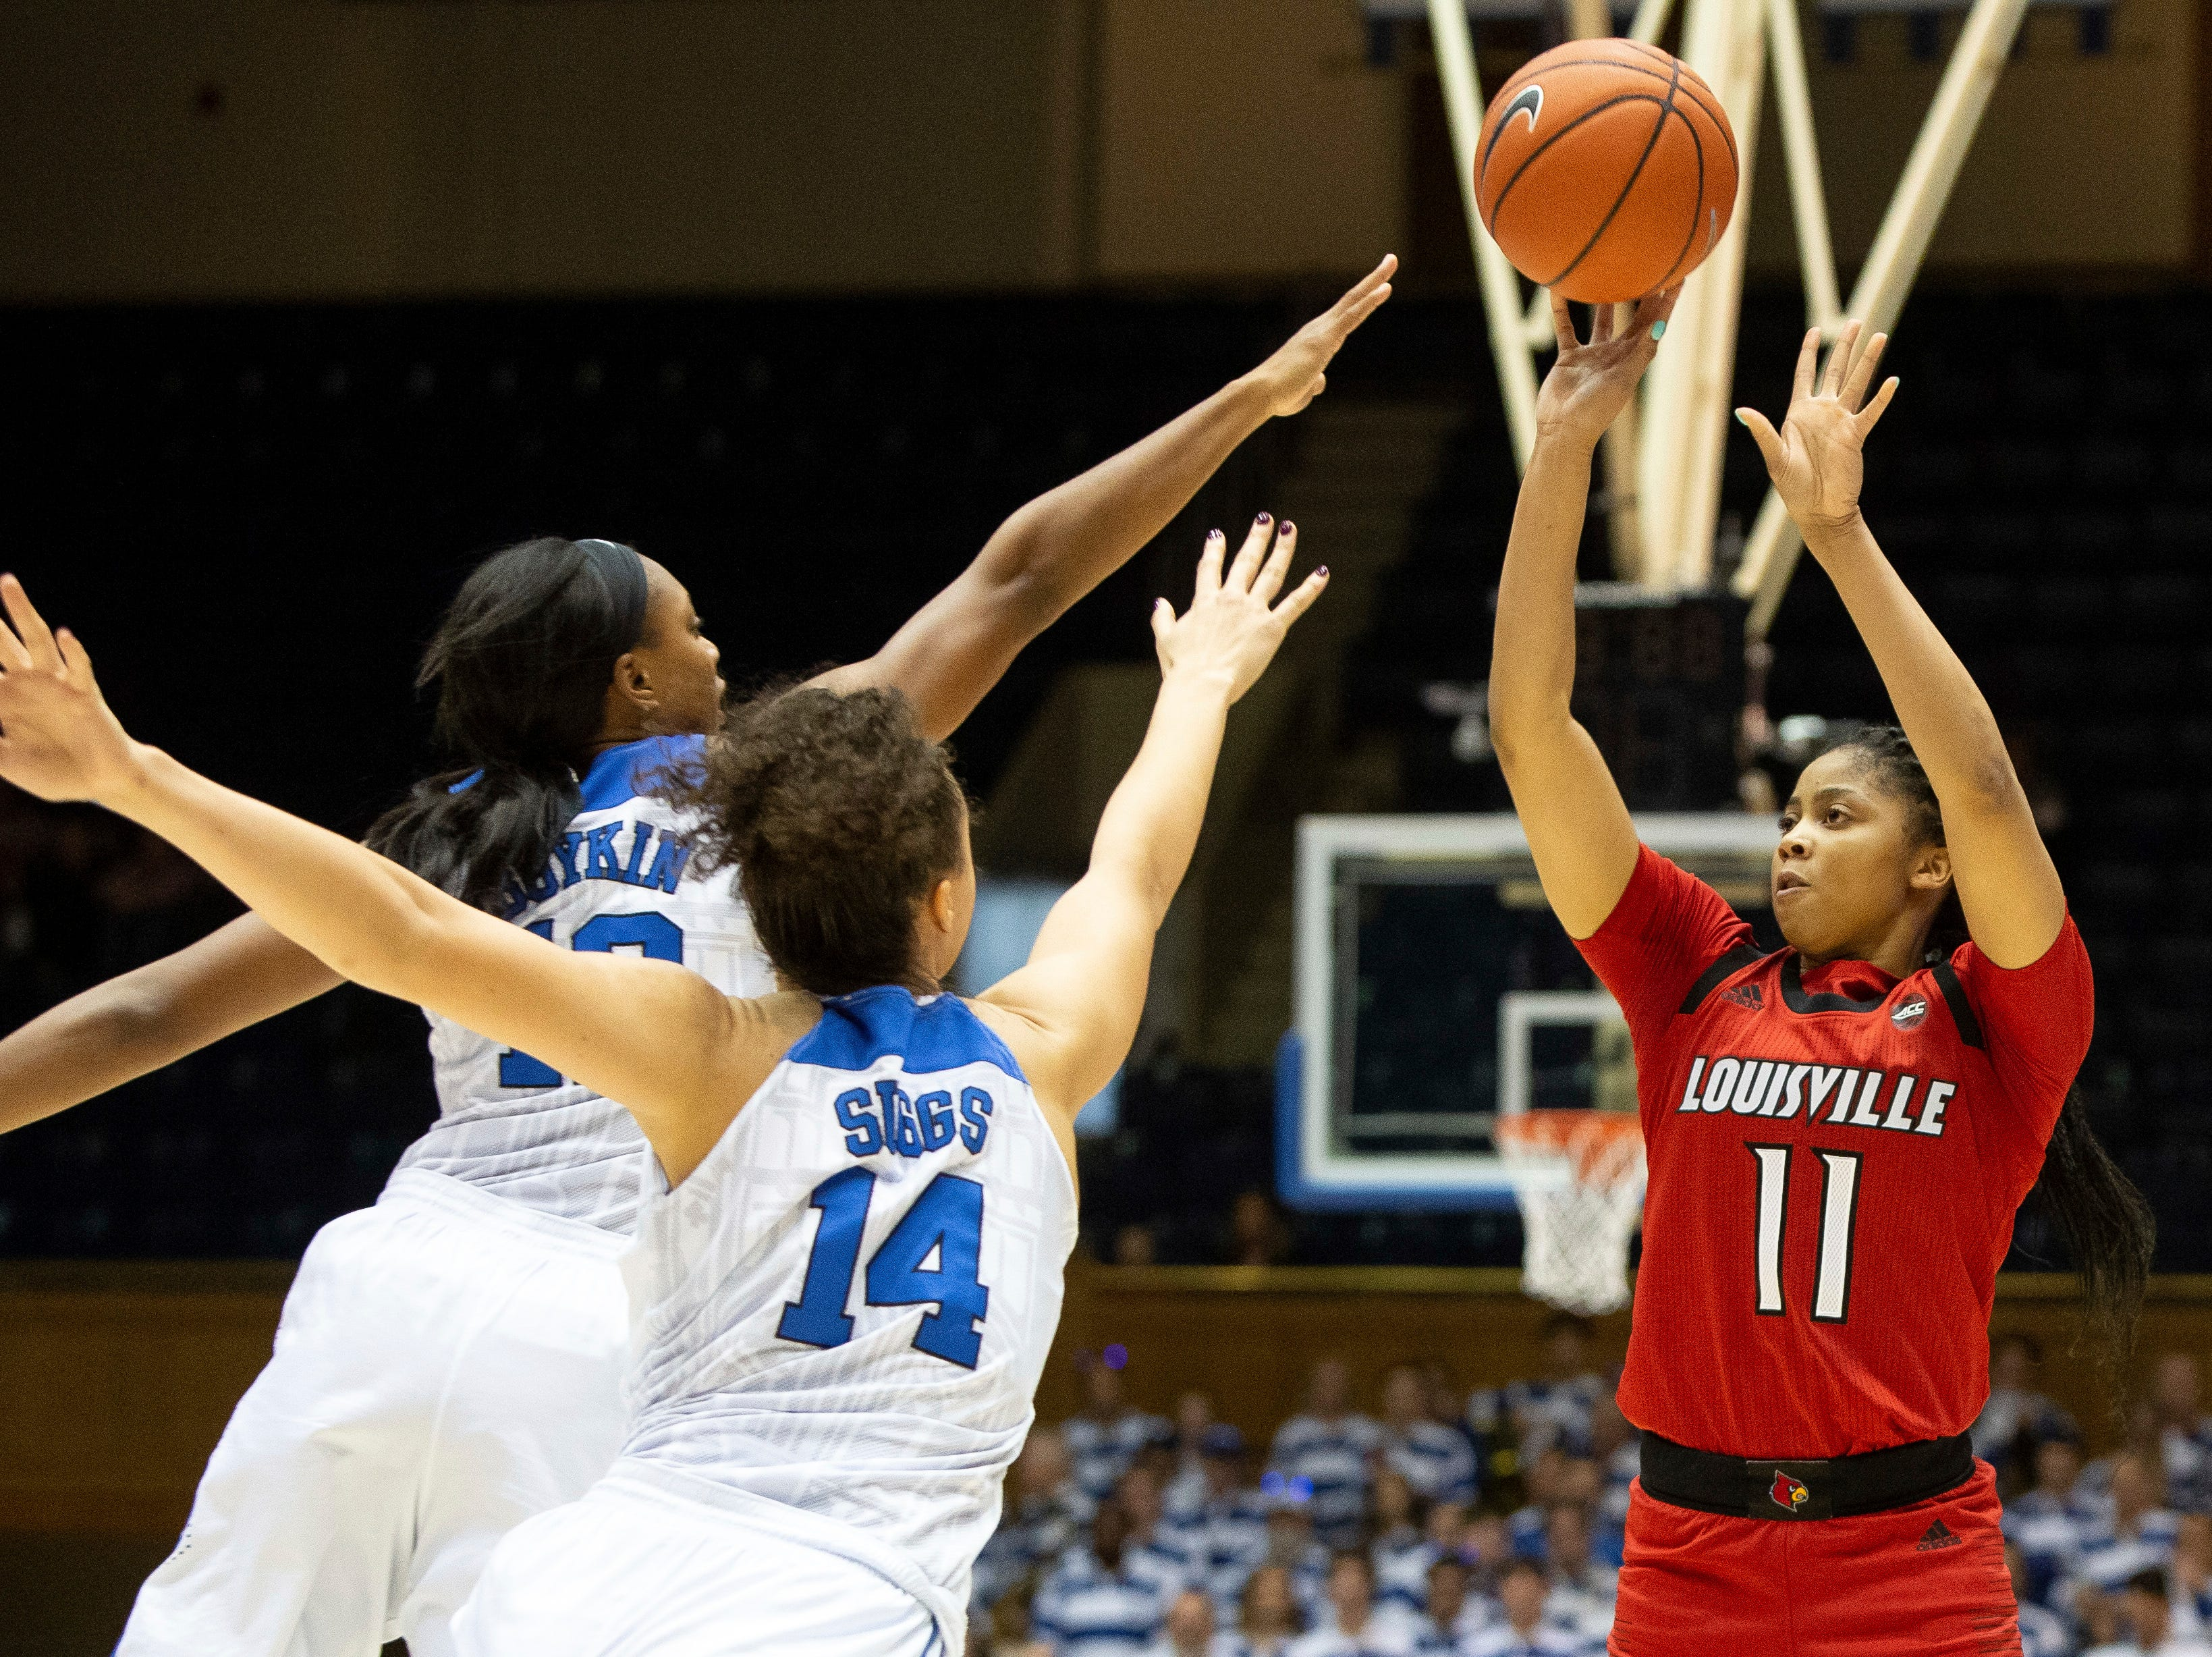 Louisville's Arica Carter, right, attempts a shot over Duke's Faith Suggs, center, and Mikayla Boykin, left, during the first half of an NCAA college basketball game in Durham, N.C., Sunday, Jan. 6, 2019.